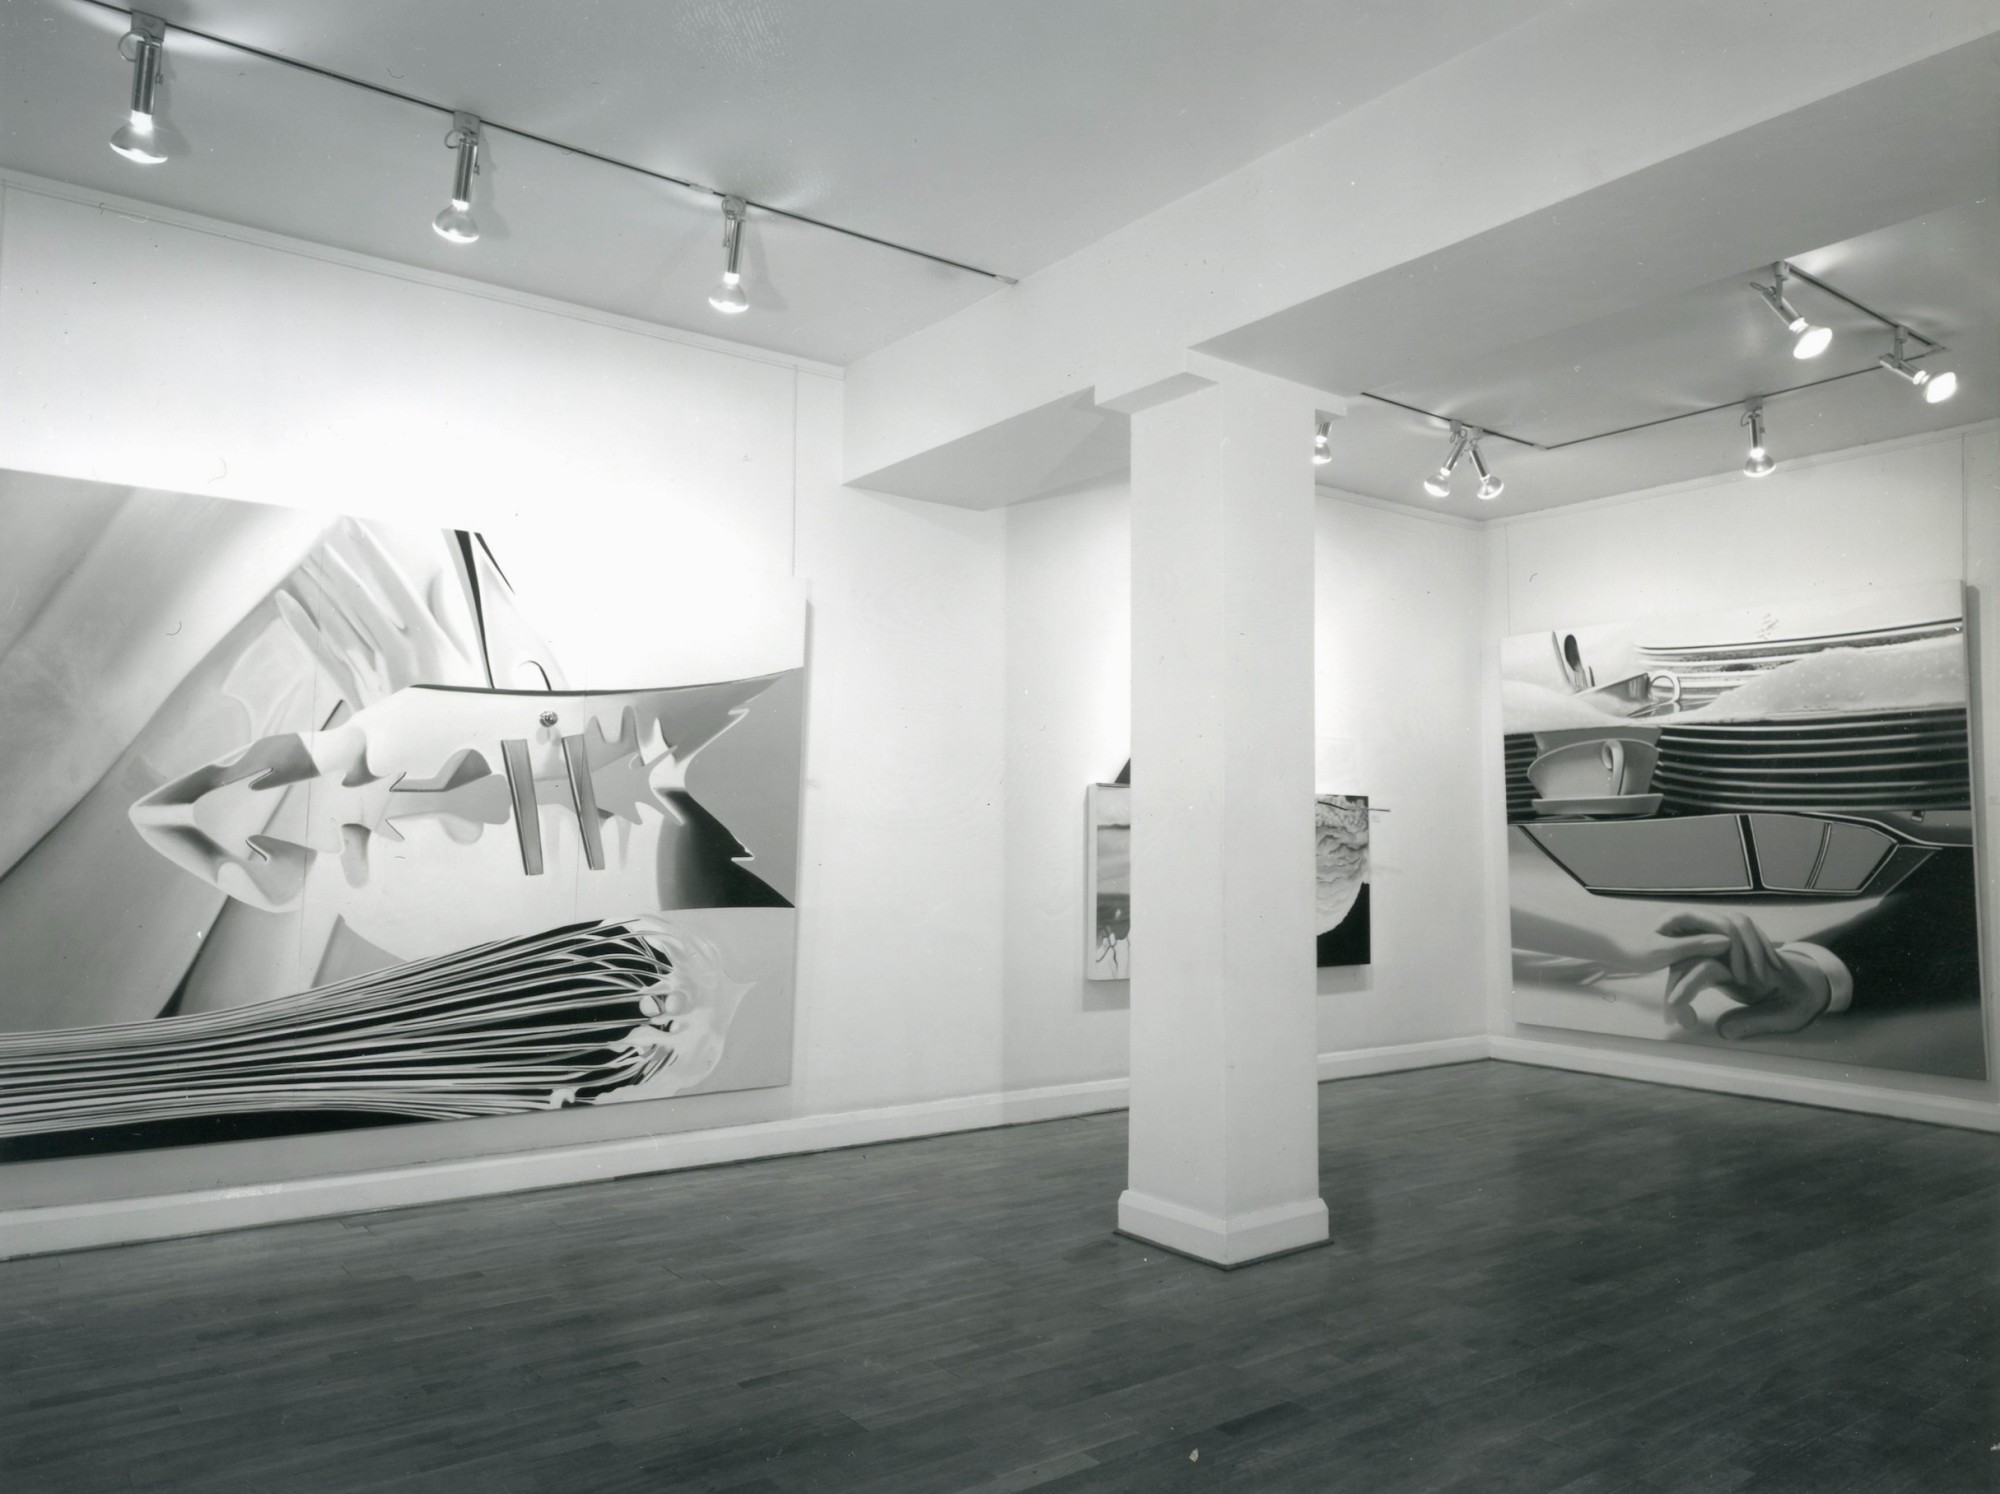 """<span class=""""link fancybox-details-link""""><a href=""""/exhibitions/301/works/image_standalone1502/"""">View Detail Page</a></span><p>JAMES ROSENQUIST   29 NOV - 21 DEC 1978   Installation View</p>"""